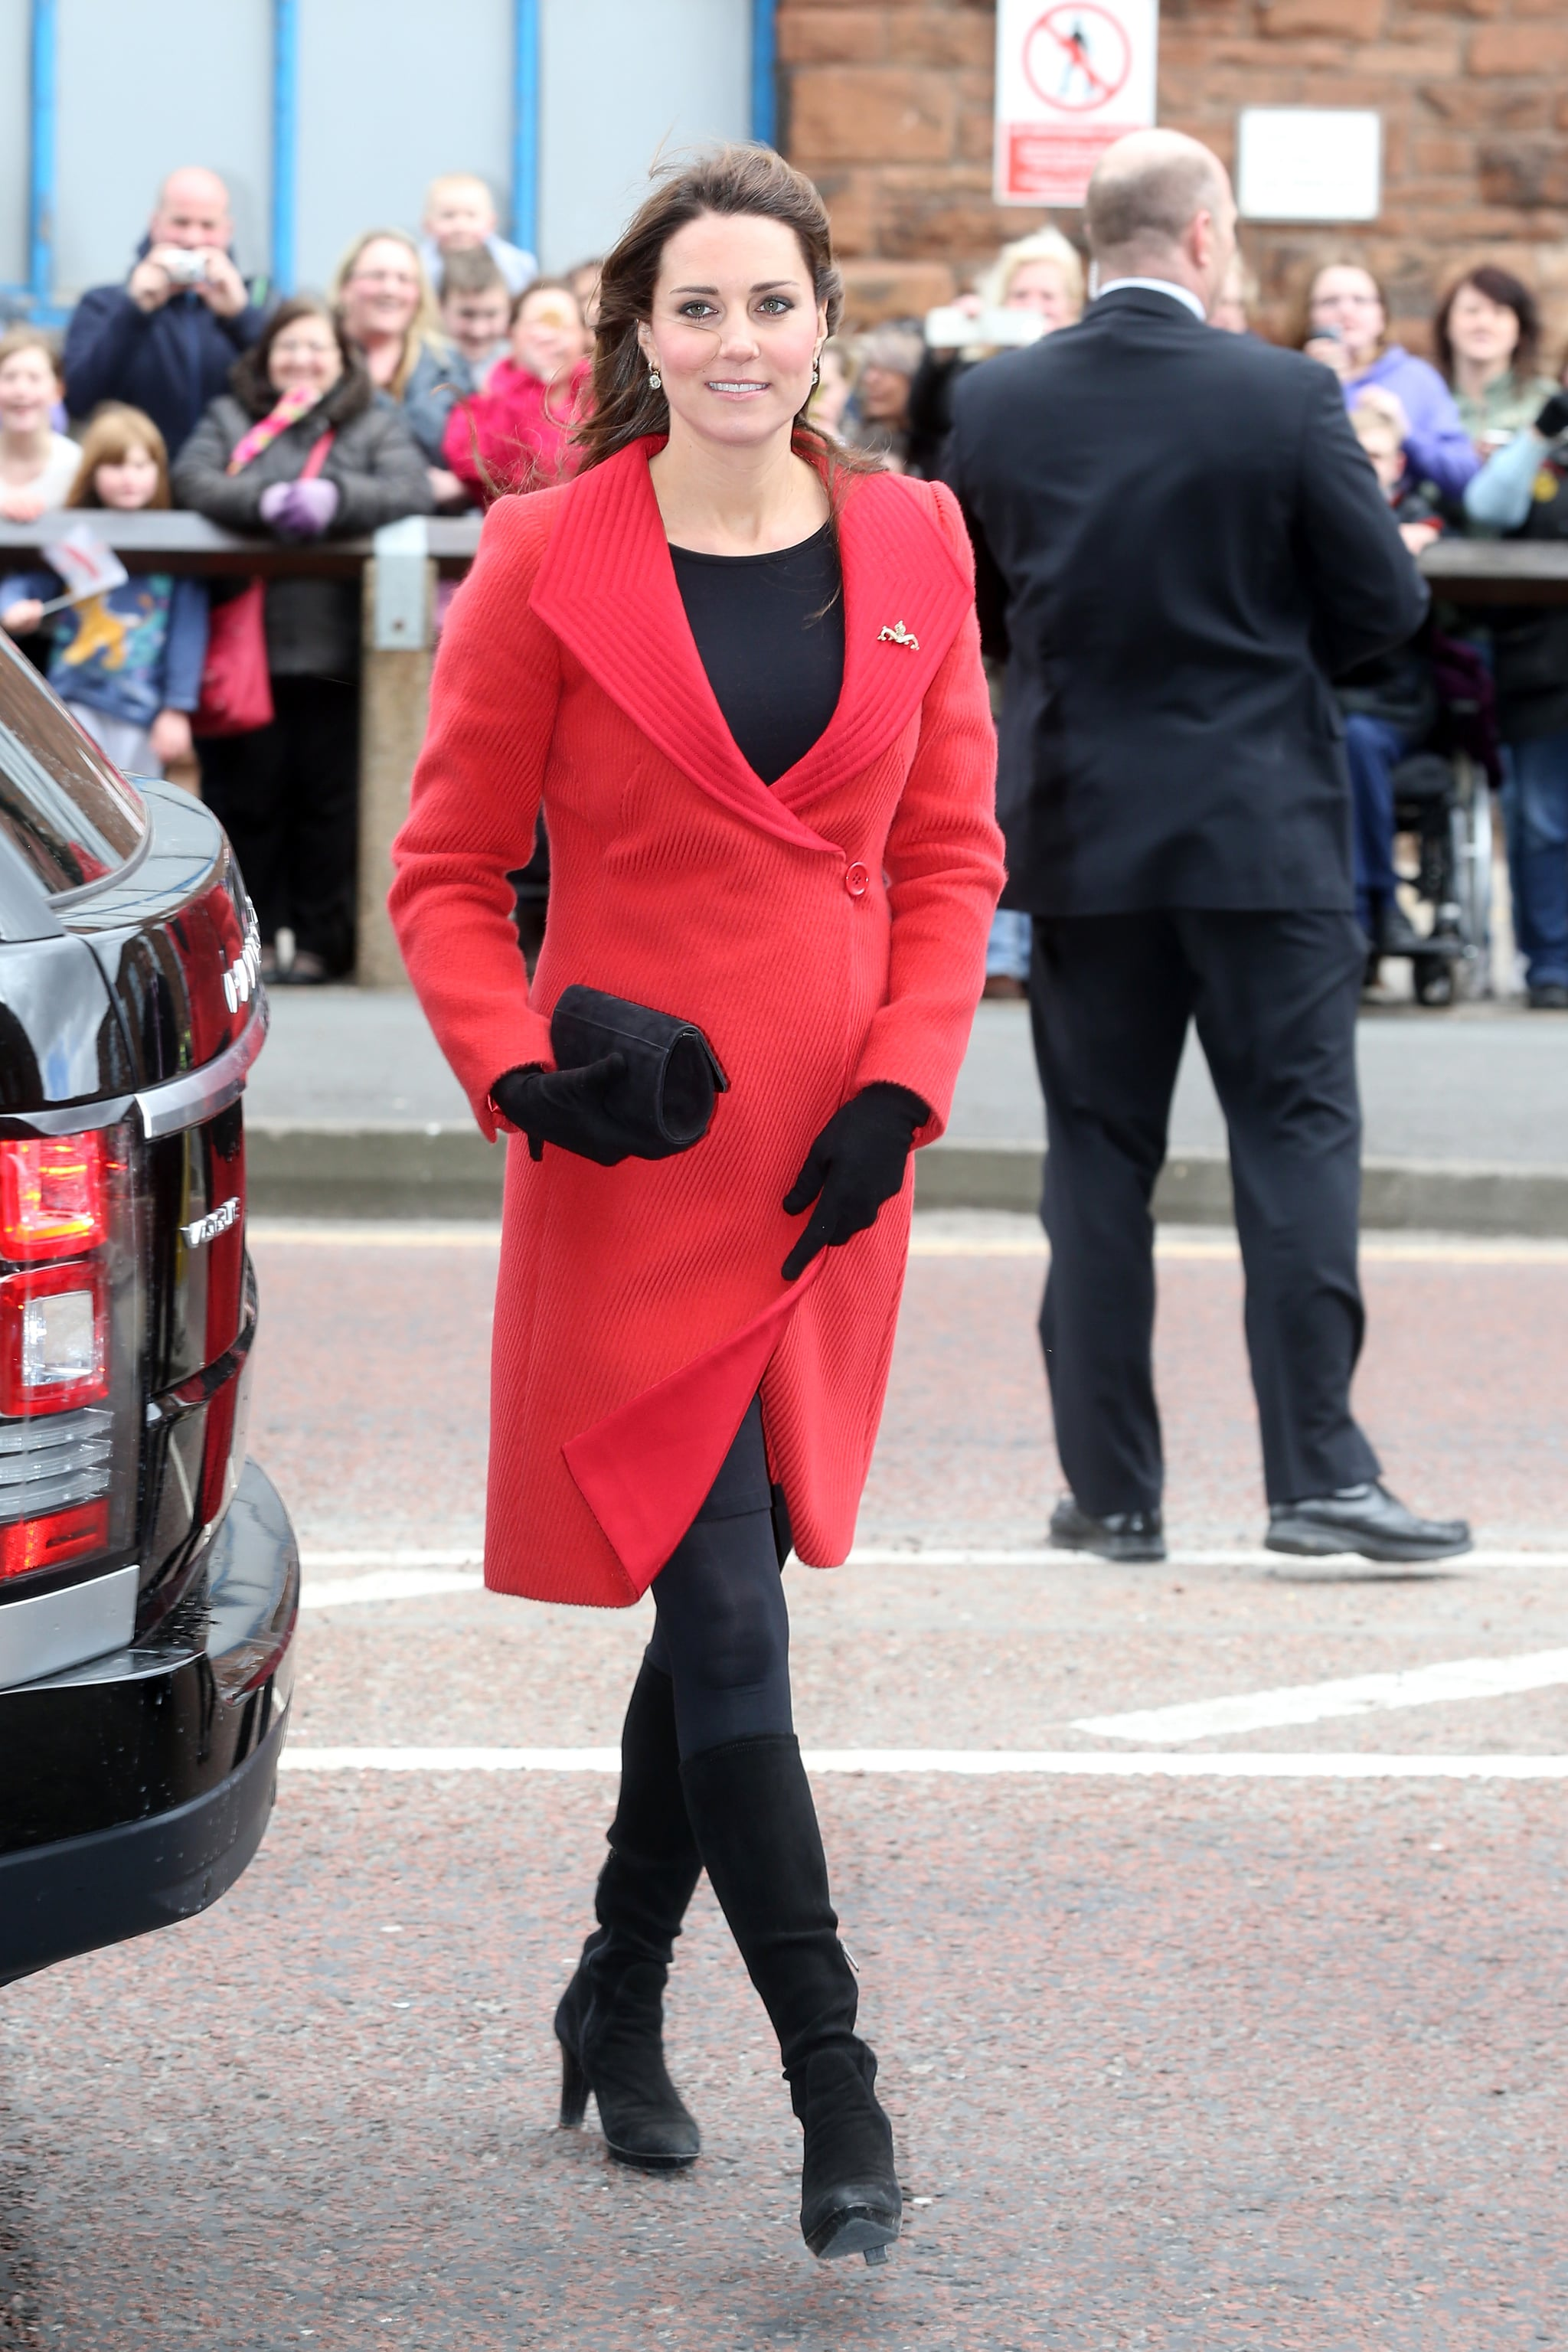 Kate Middleton at the Astute-Class Submarine Building in 2013